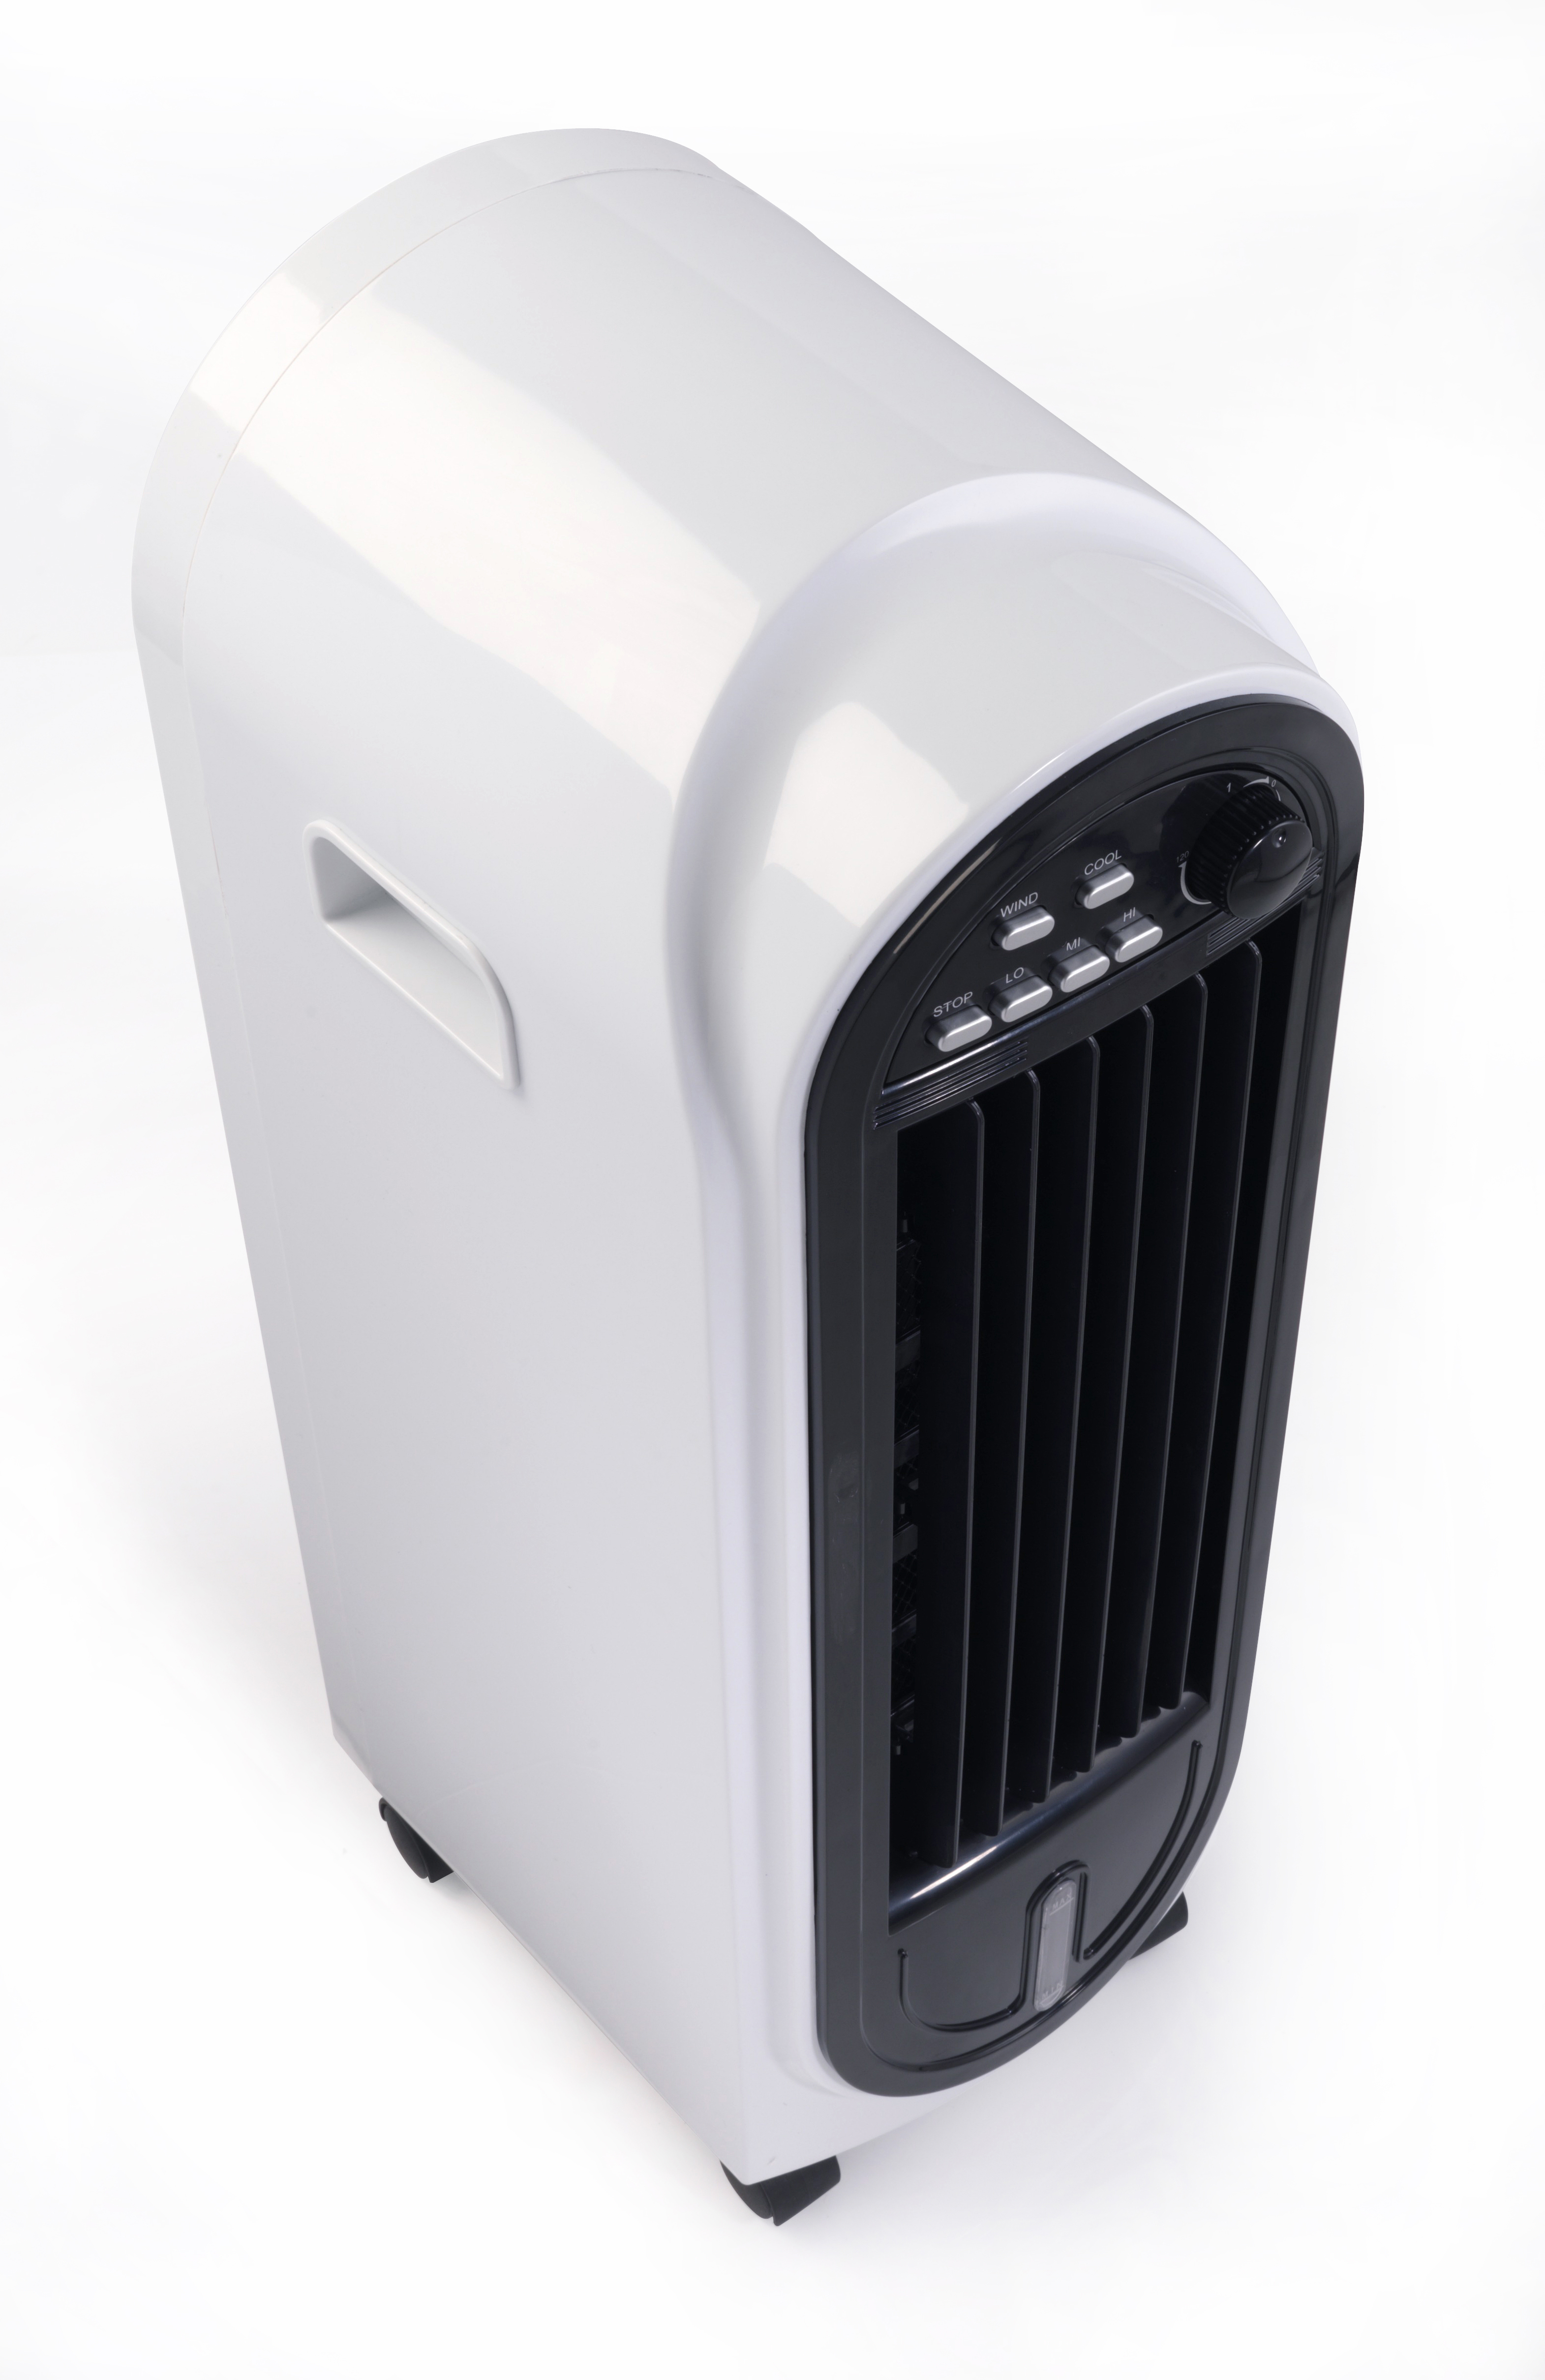 Air To Air Cooling : Beldray in air cooler humidifier and purifier